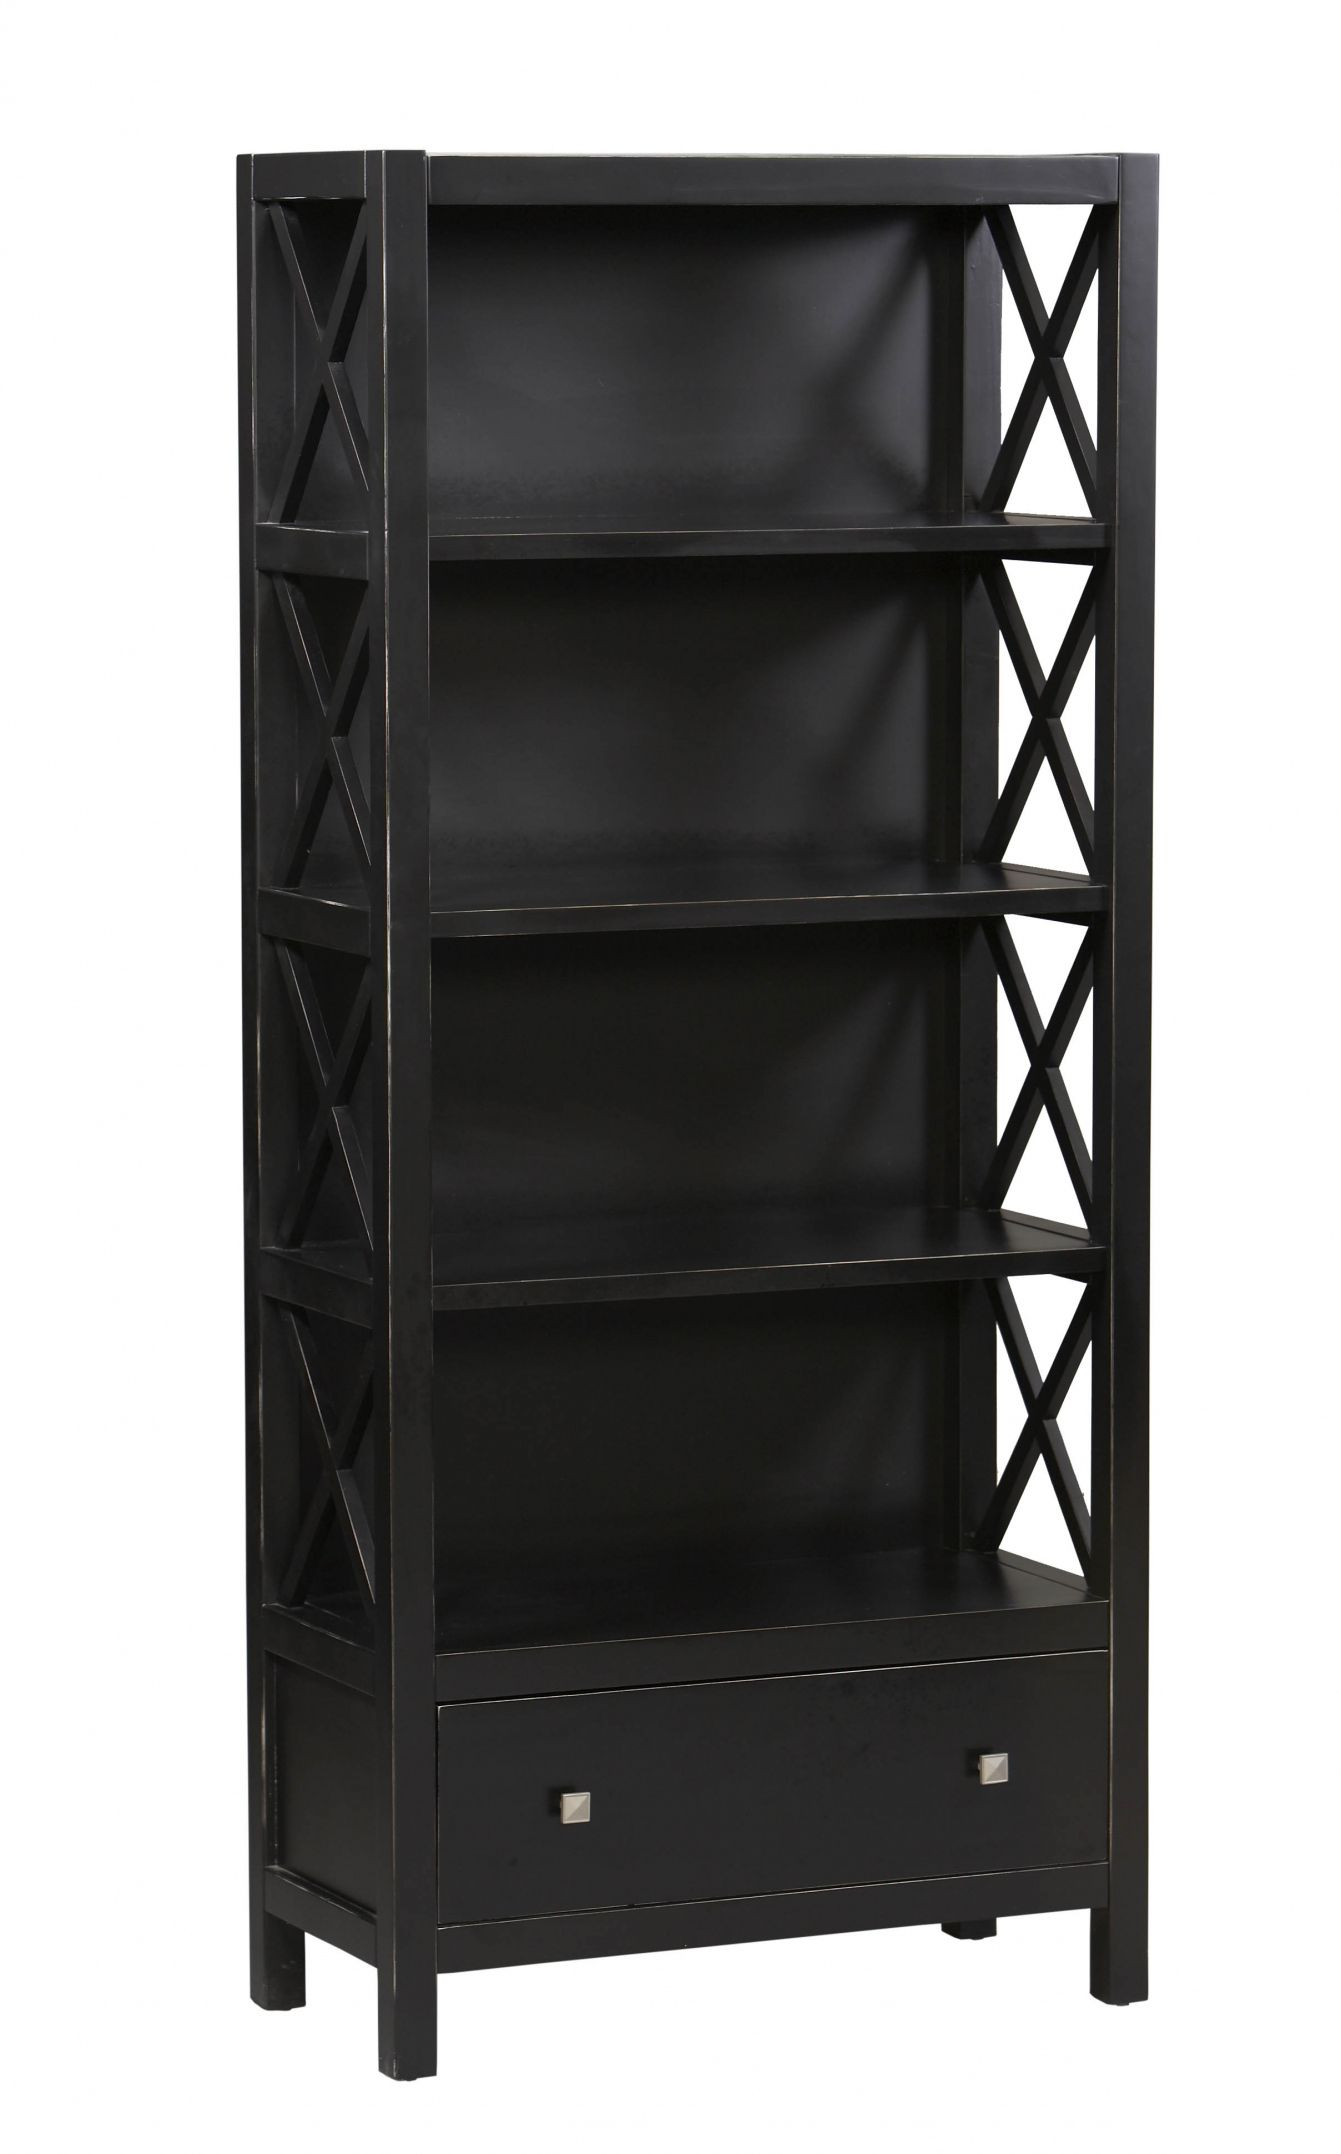 Tall Black Bookcase Best Modern Furniture Check More At Http Fiveinchfloppy